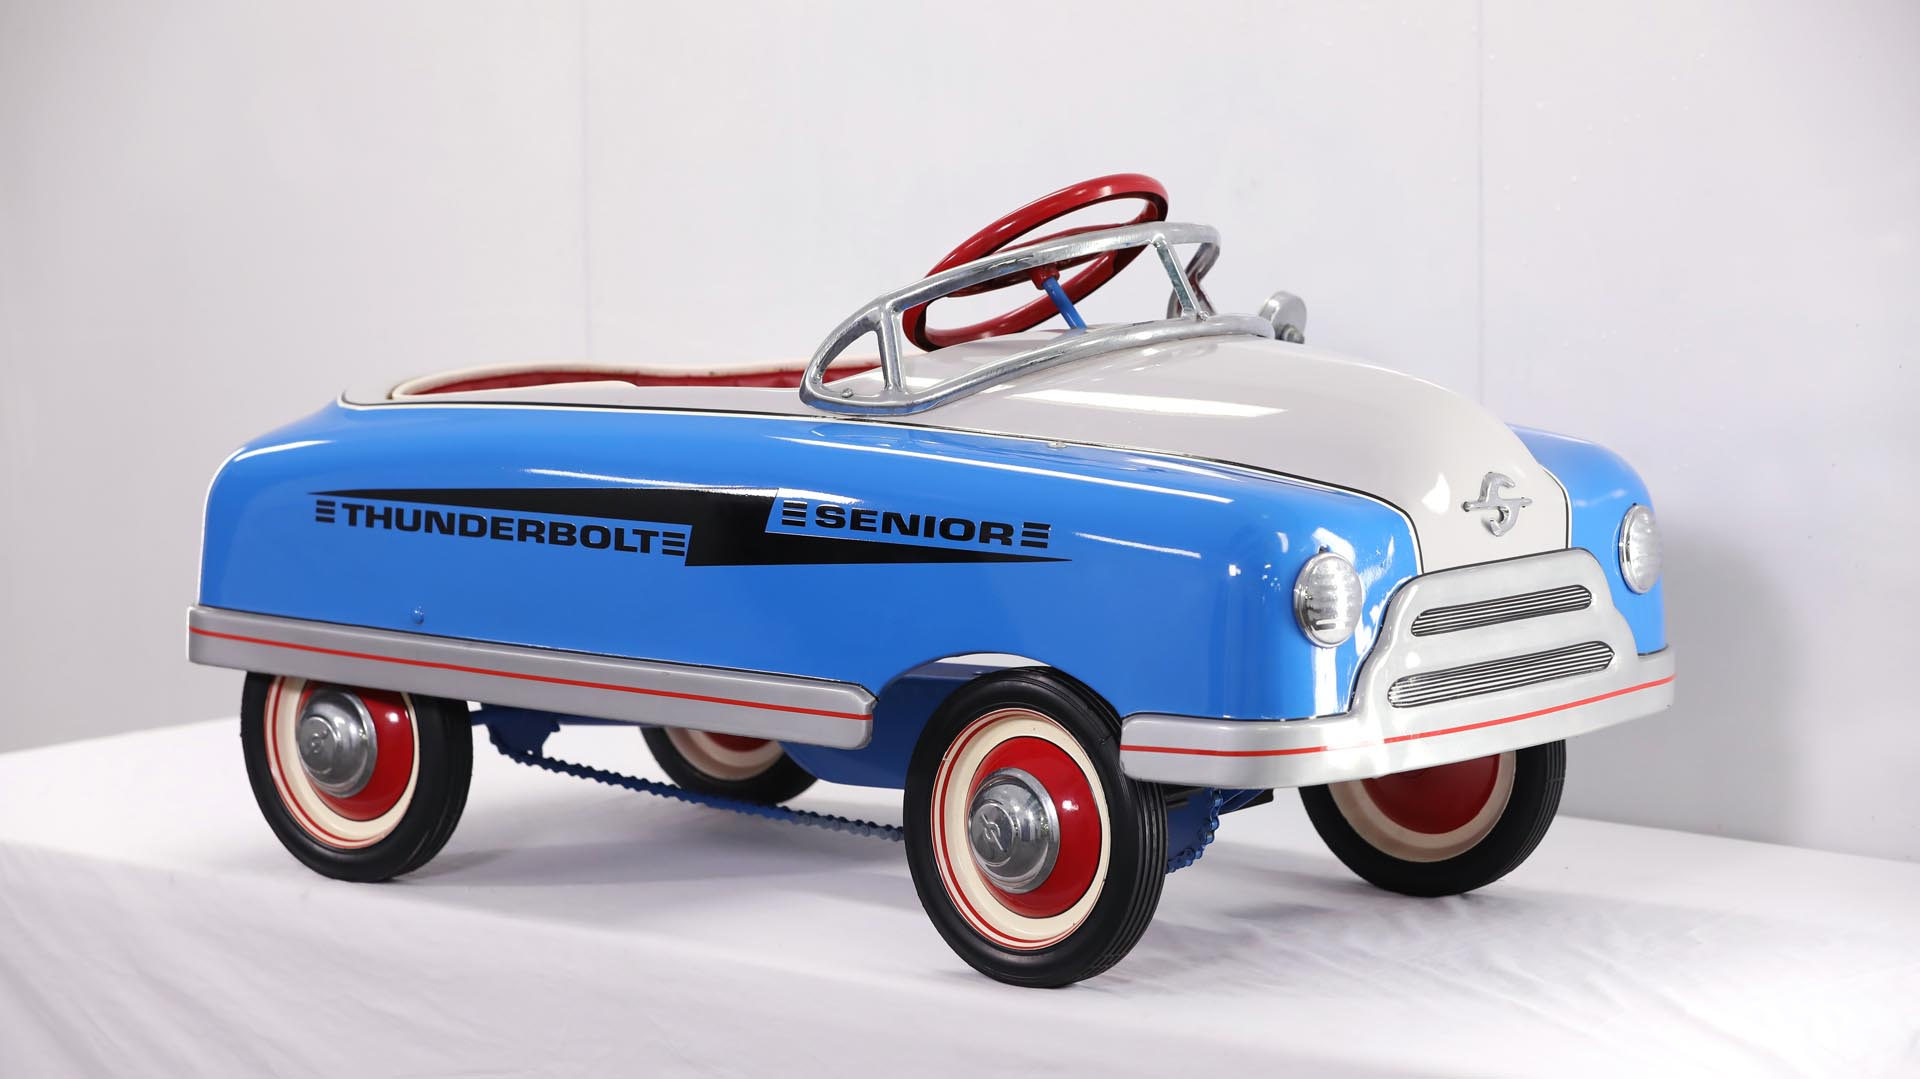 1950s BMC Thunderbolt Senior Pedal Car